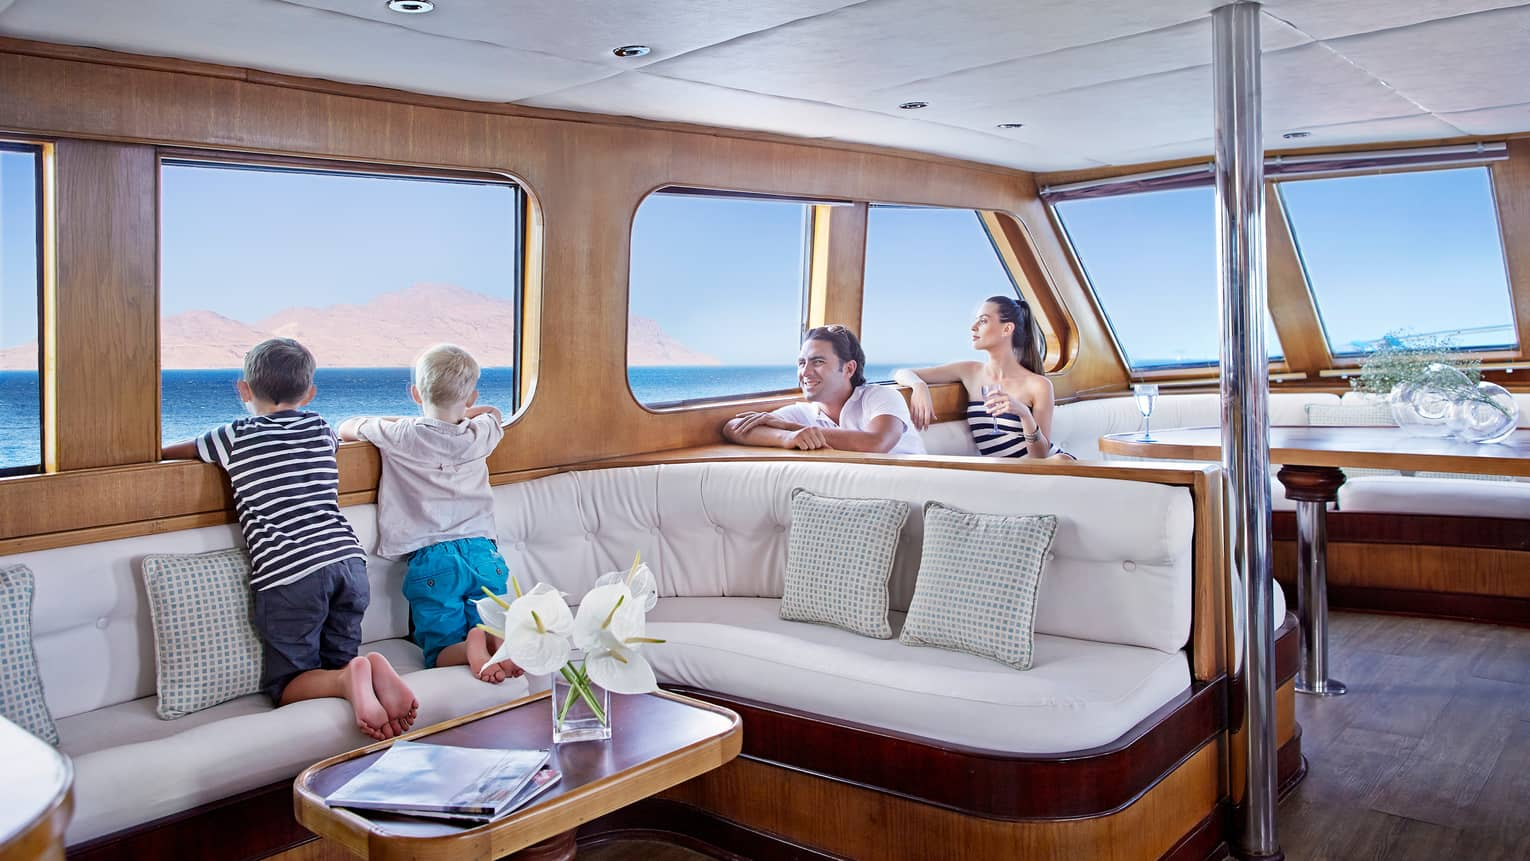 Two children kneel on white L-shaped sofa in yacht, look out window, in front of their smiling parents